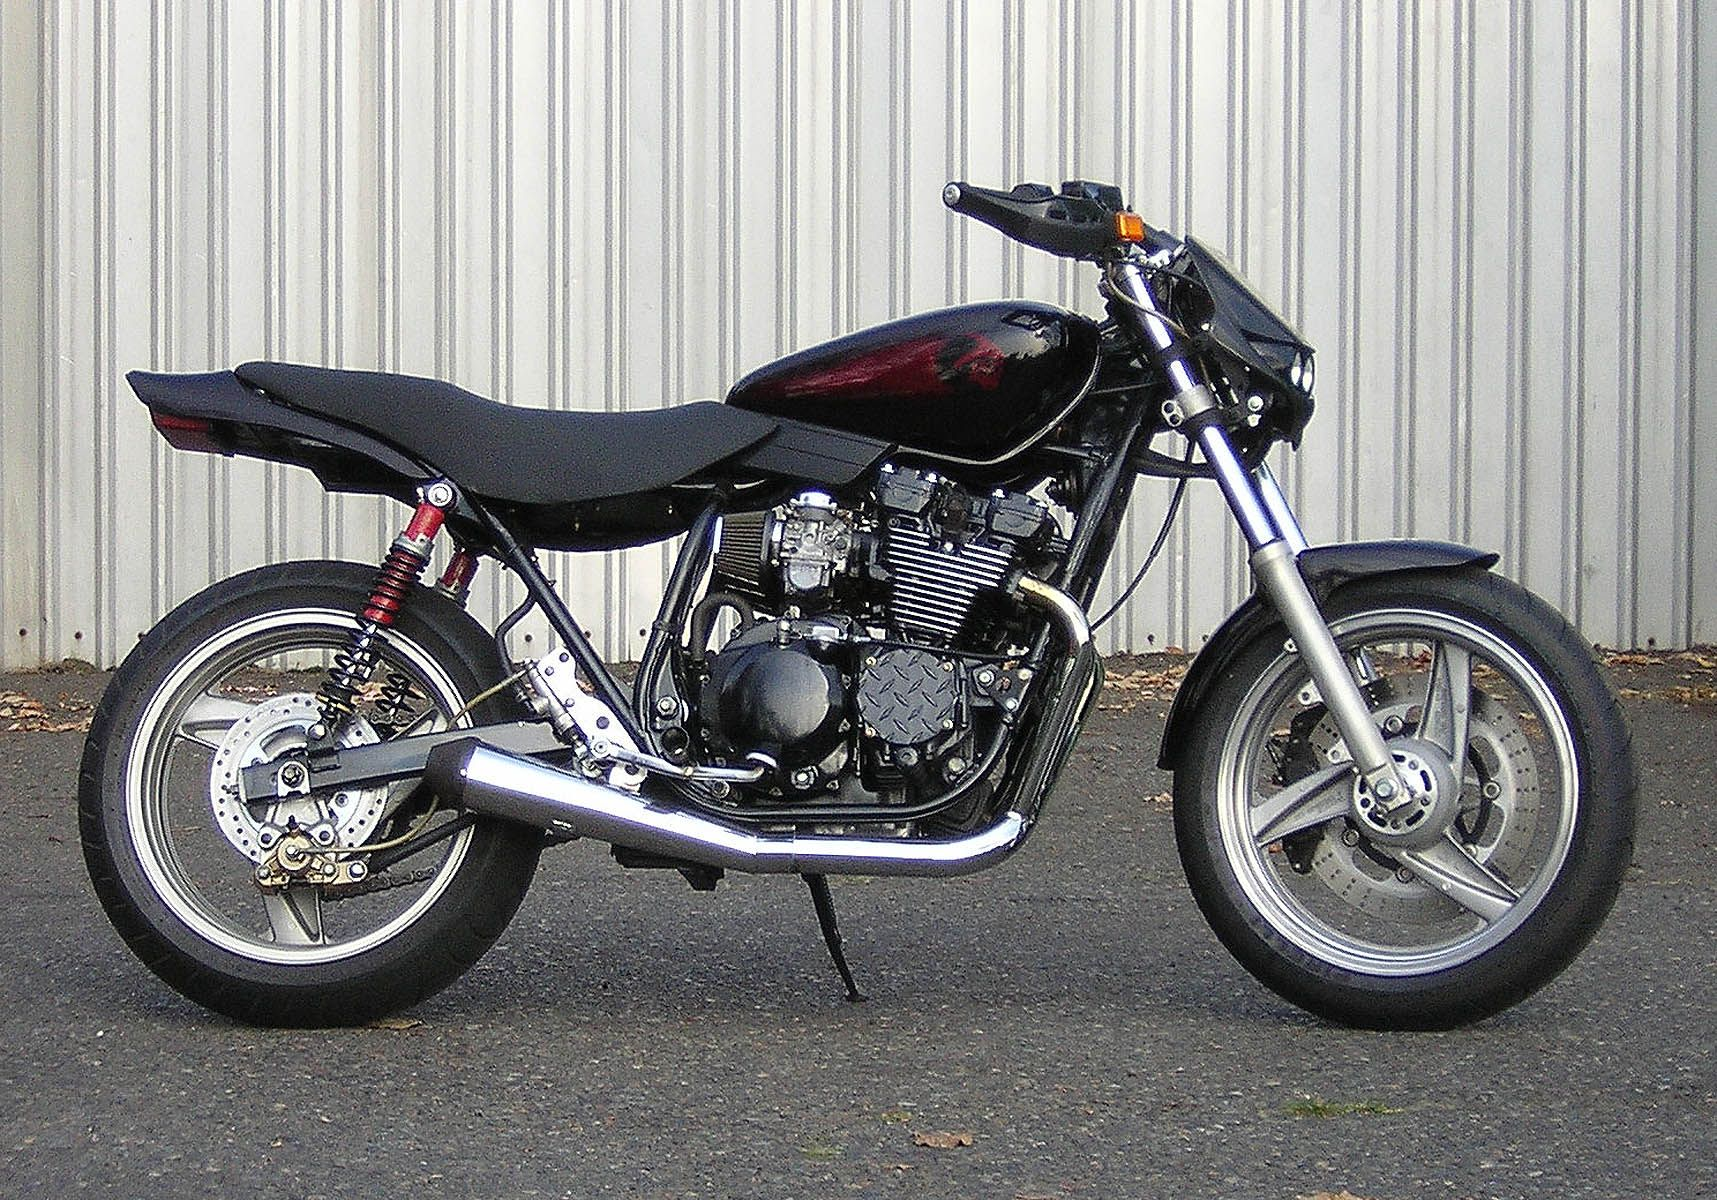 Radian Vicious Cycle My Ride Street Tracker Cafe Racer